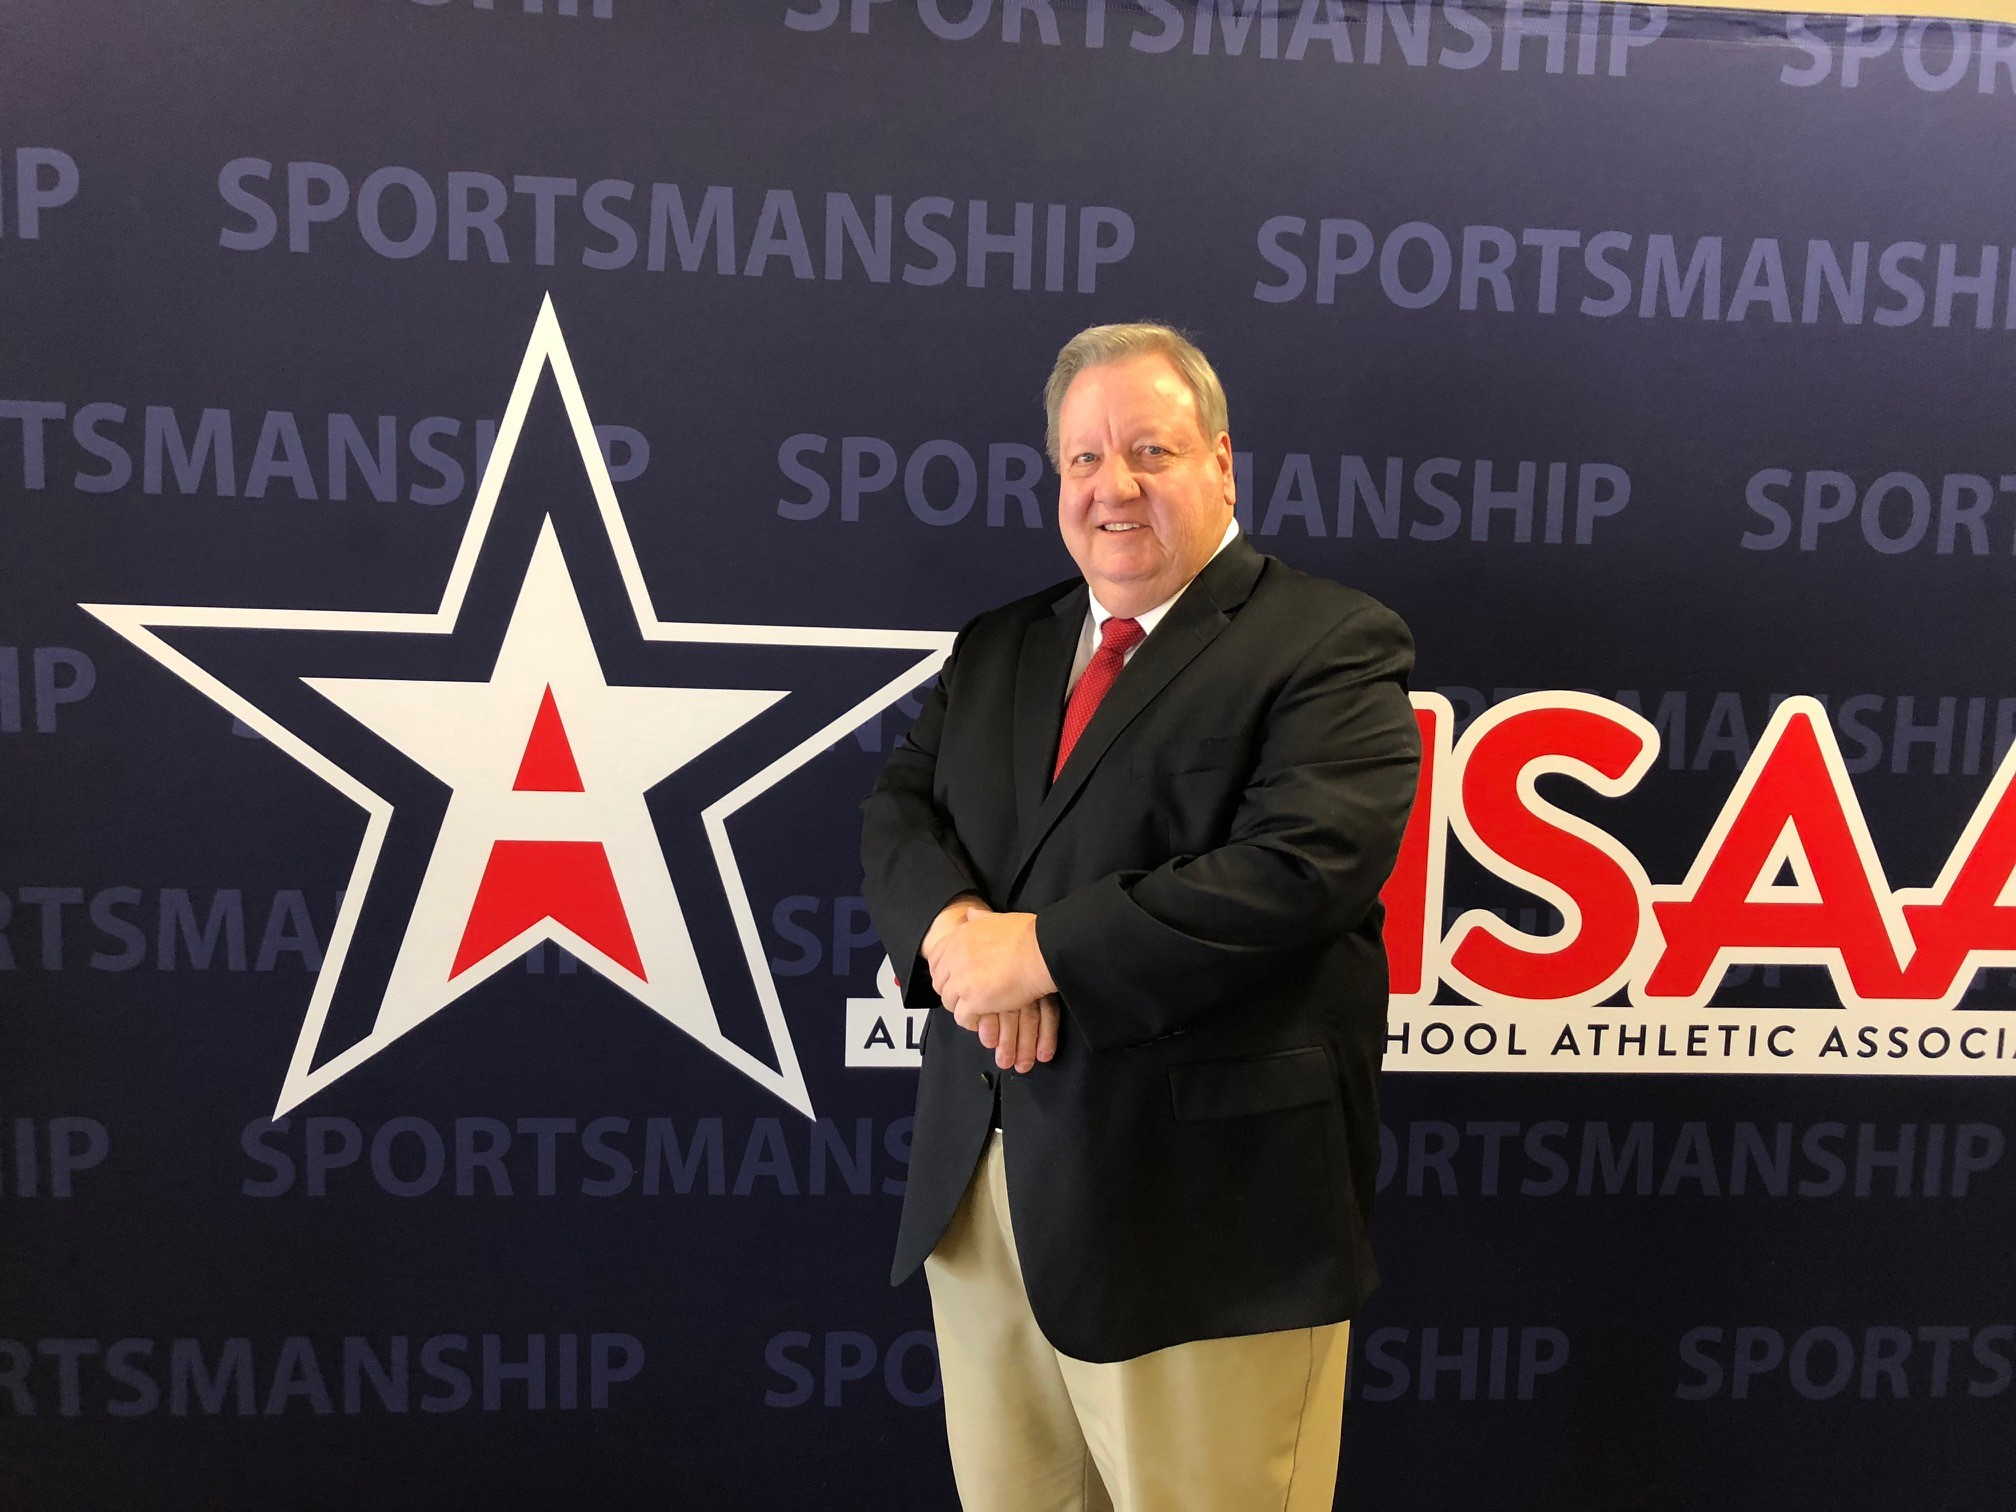 Greg Brewer's Leadership and Impact Raised Standards for High School Officials